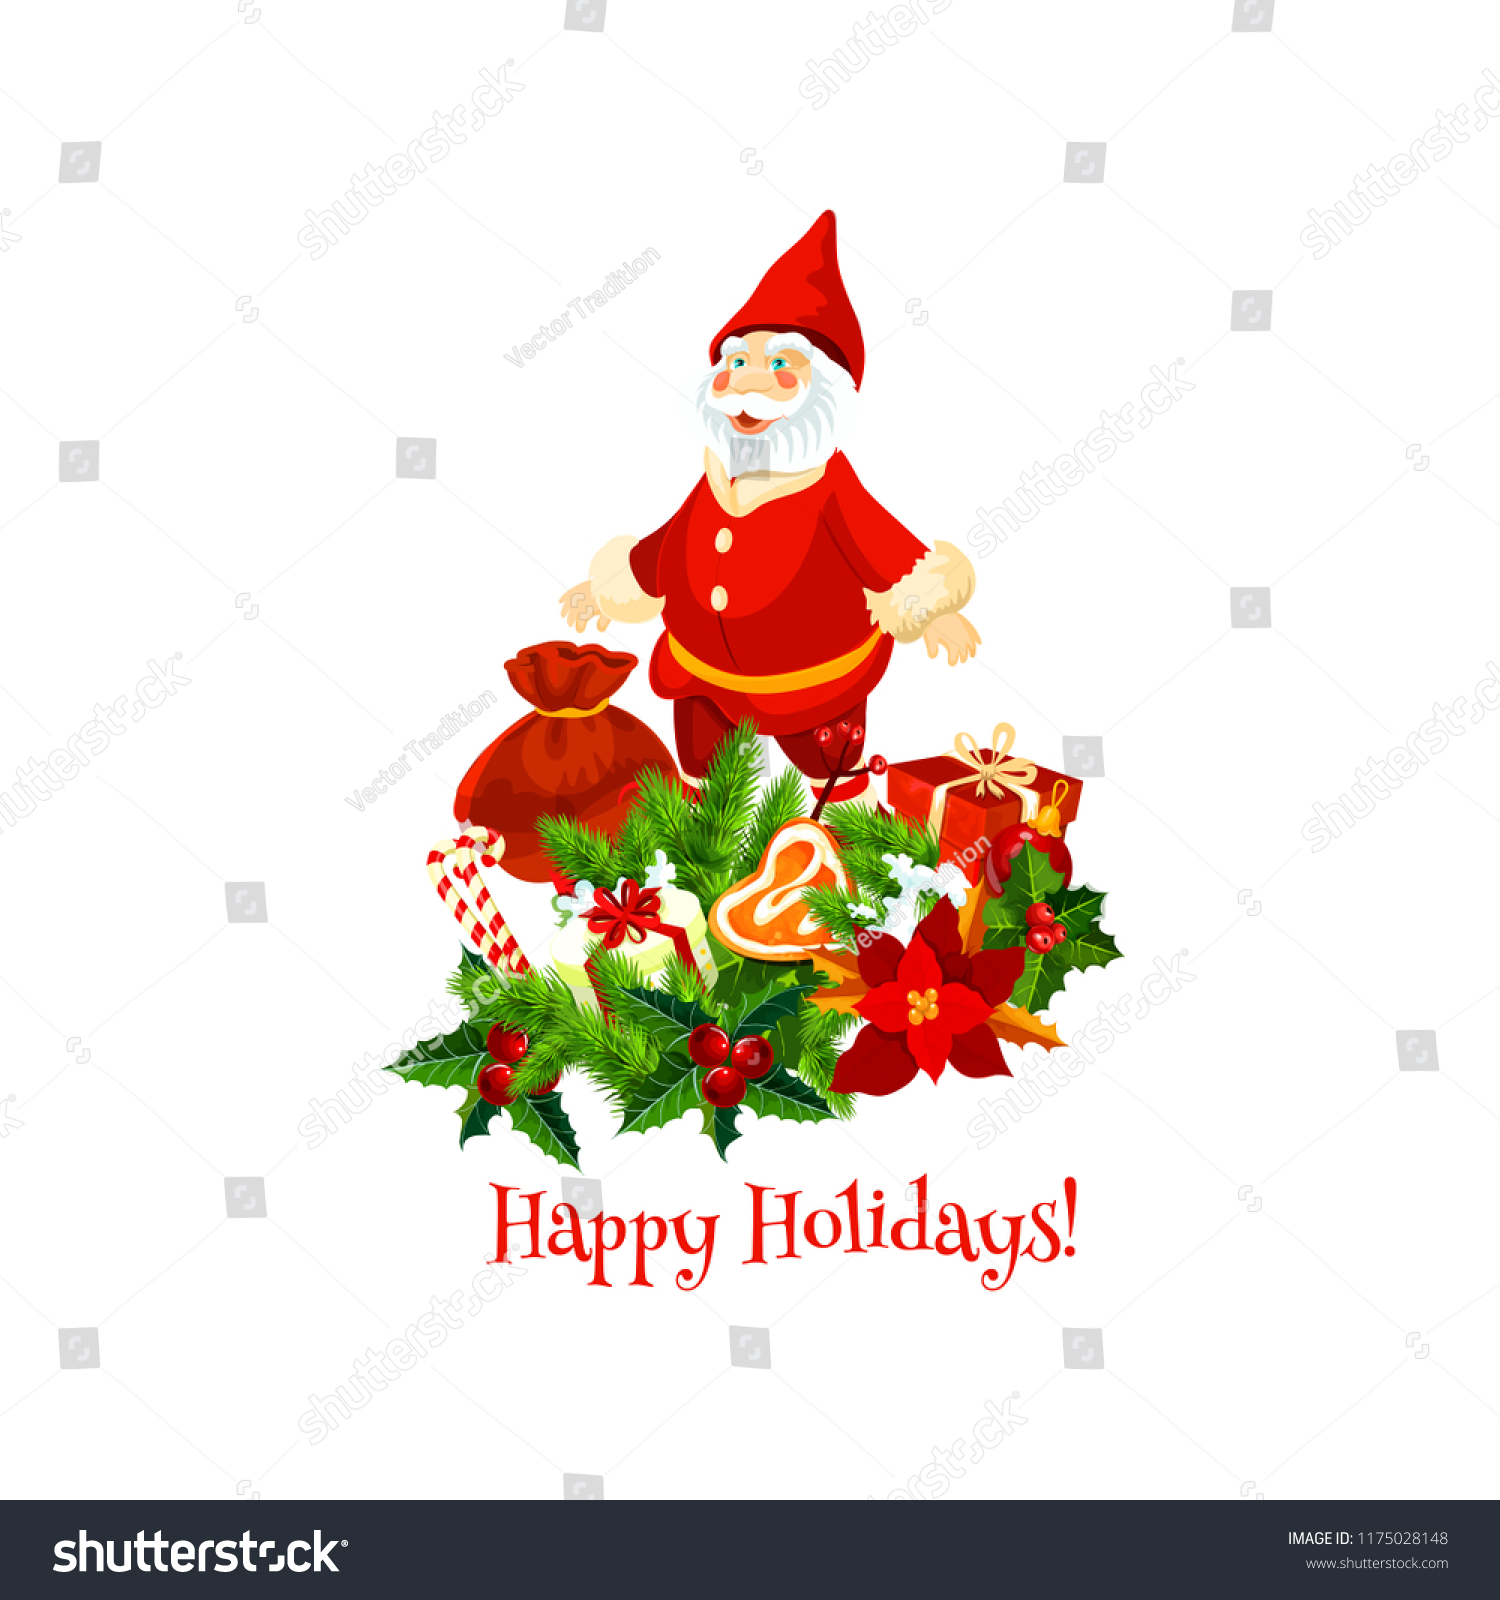 Santa Claus Christmas Gift Winter Holiday Stock Vector (Royalty Free ...